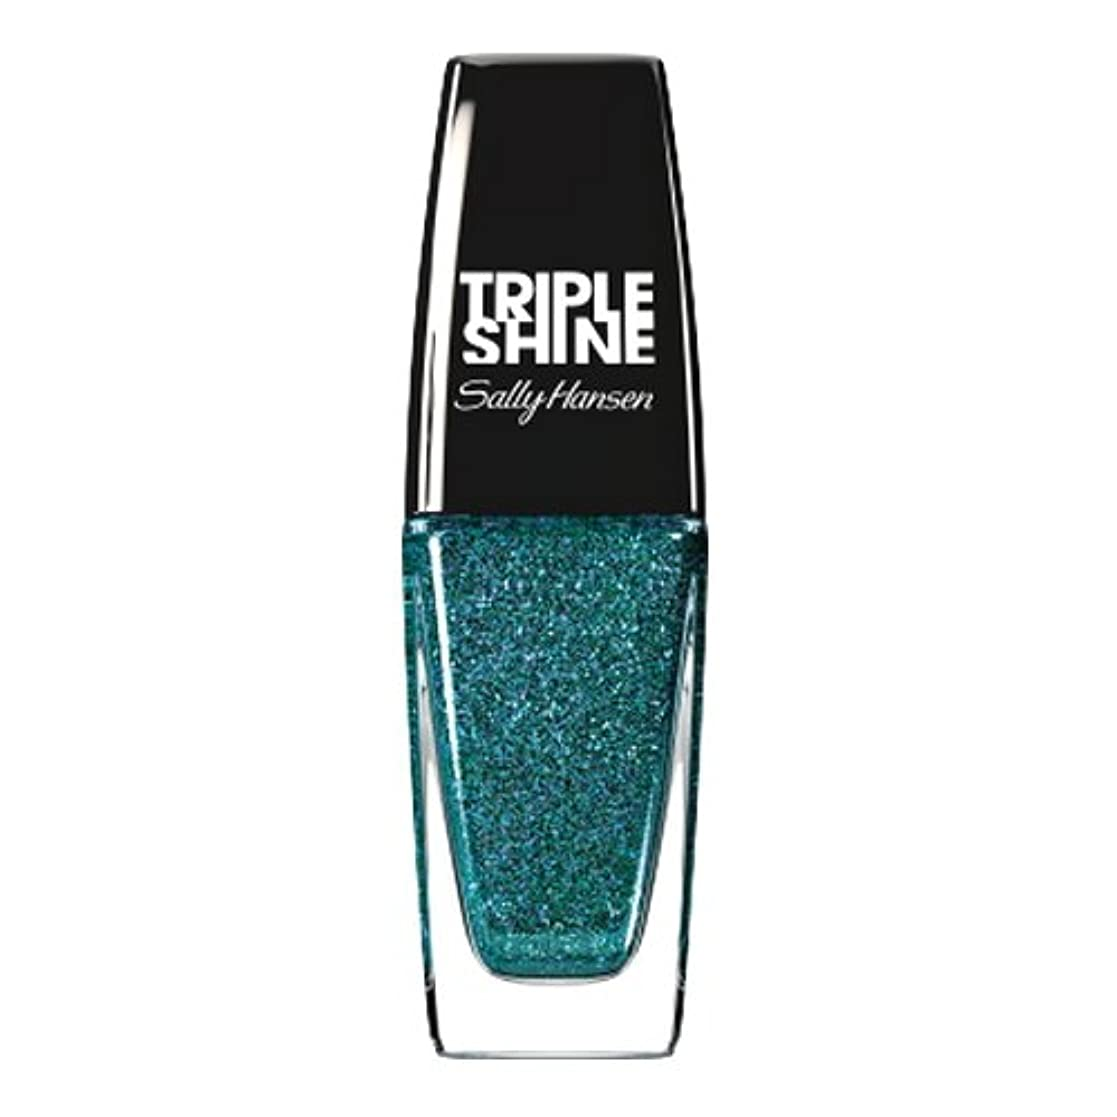 SALLY HANSEN Triple Shine Nail Polish - Sparkling Water (並行輸入品)